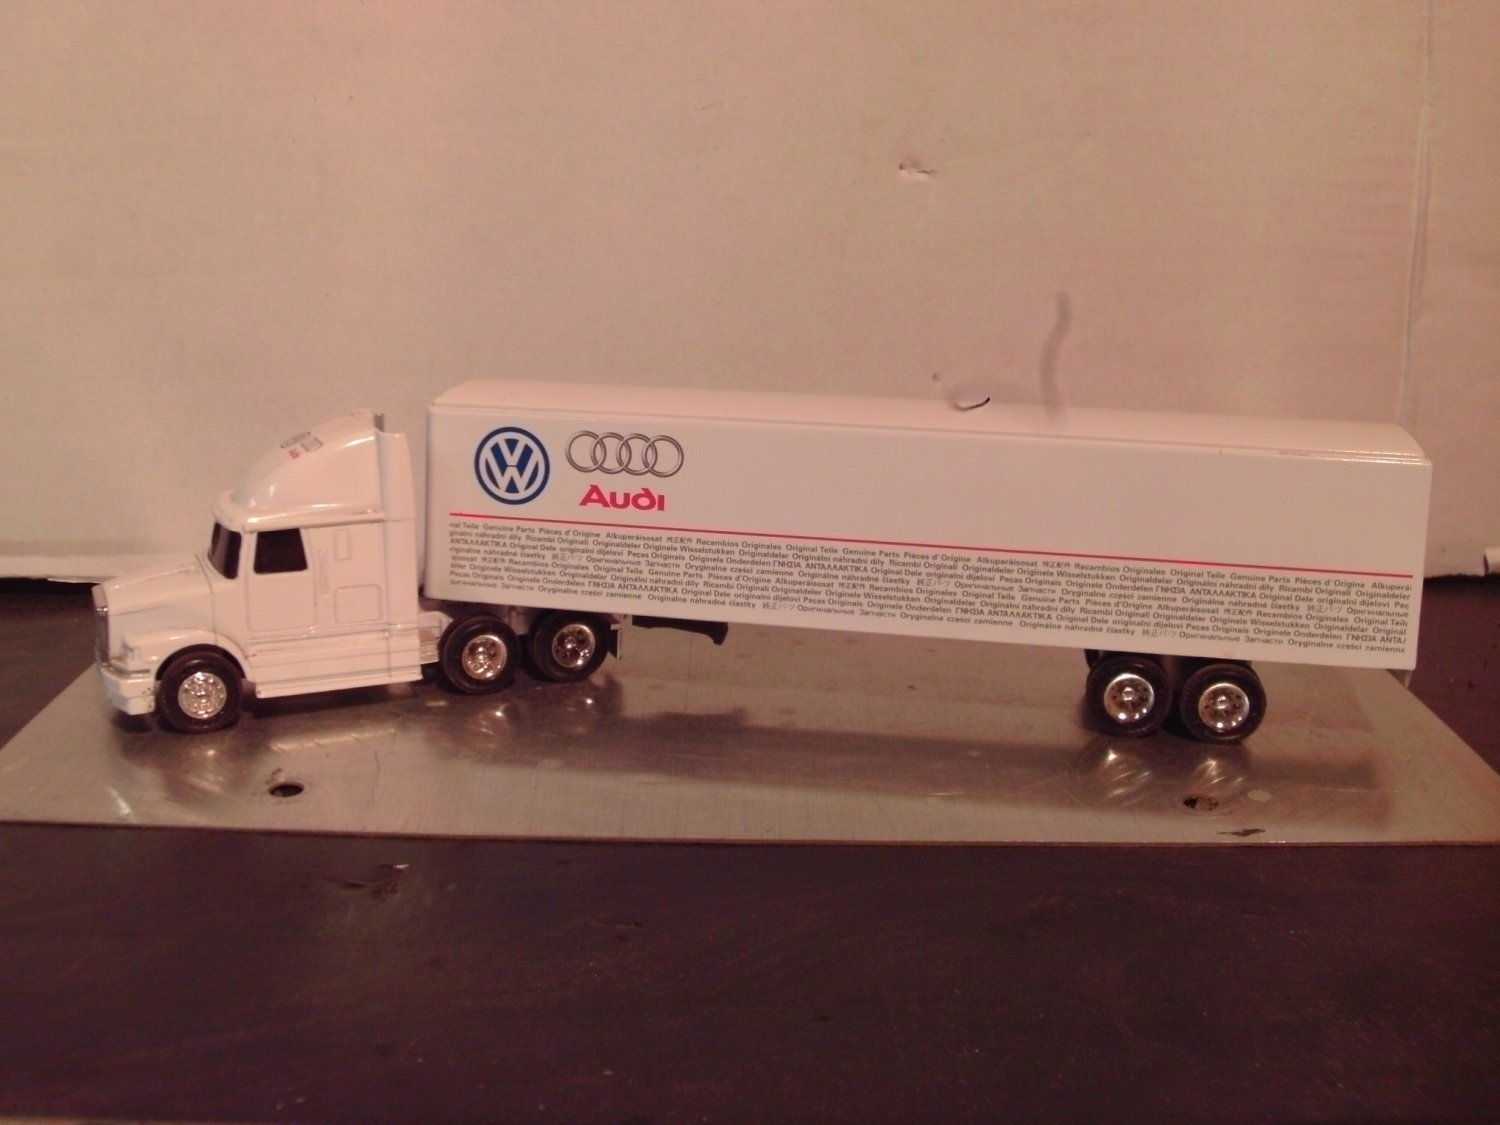 Ertl 1:64 White/GMC Volkswagen Genuine Parts Semi-Truck